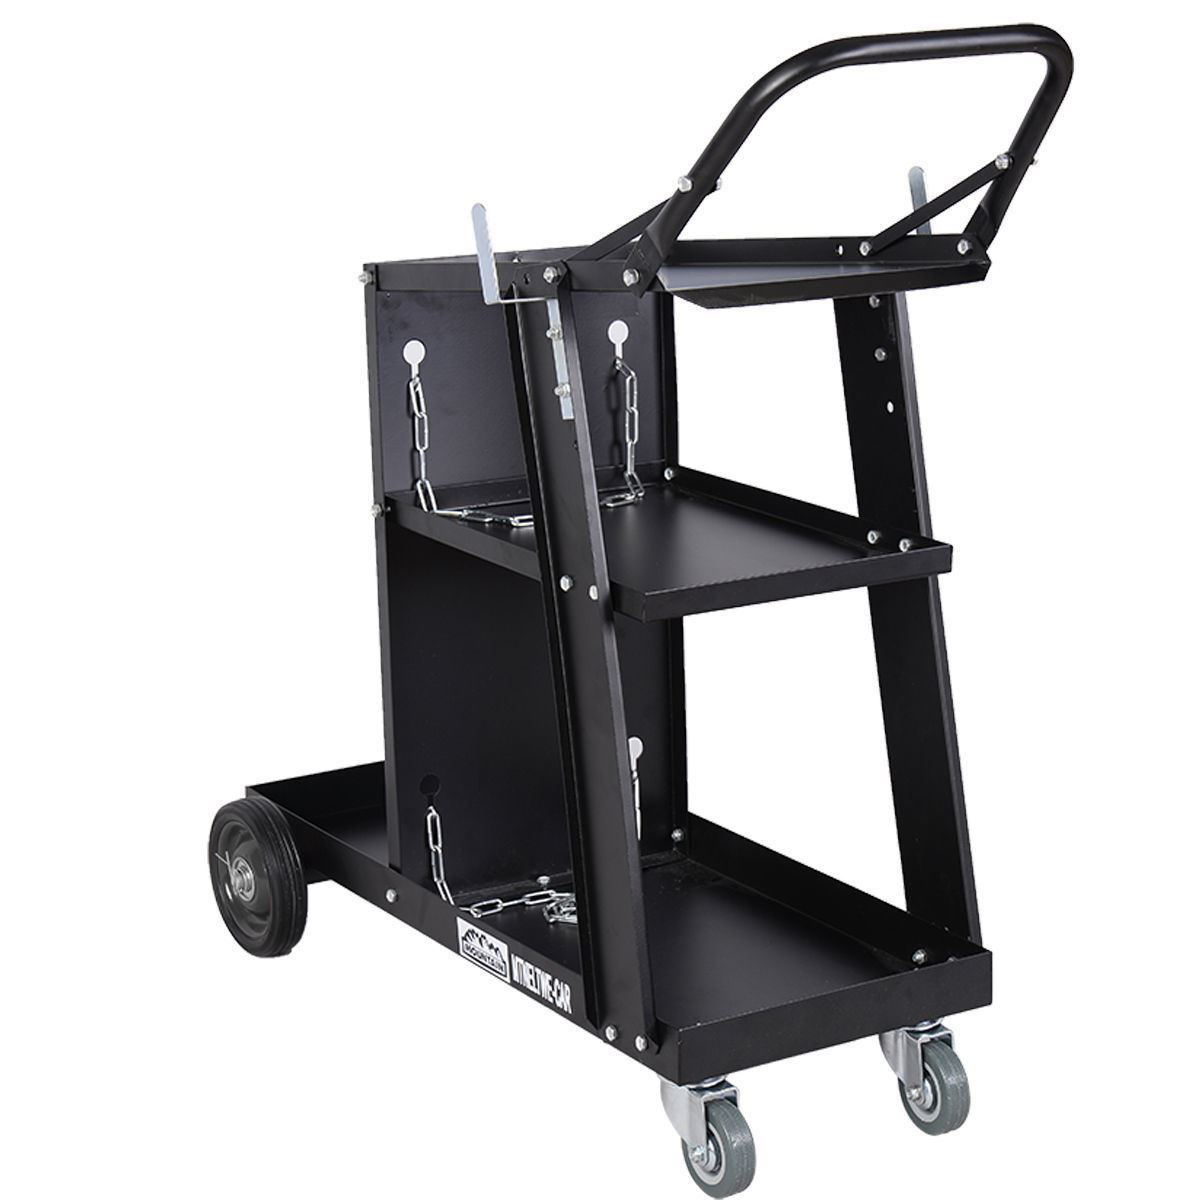 Picture of Welder Welding Cart Plasma Cutter MIG TIG ARC Universal Storage for Tanks